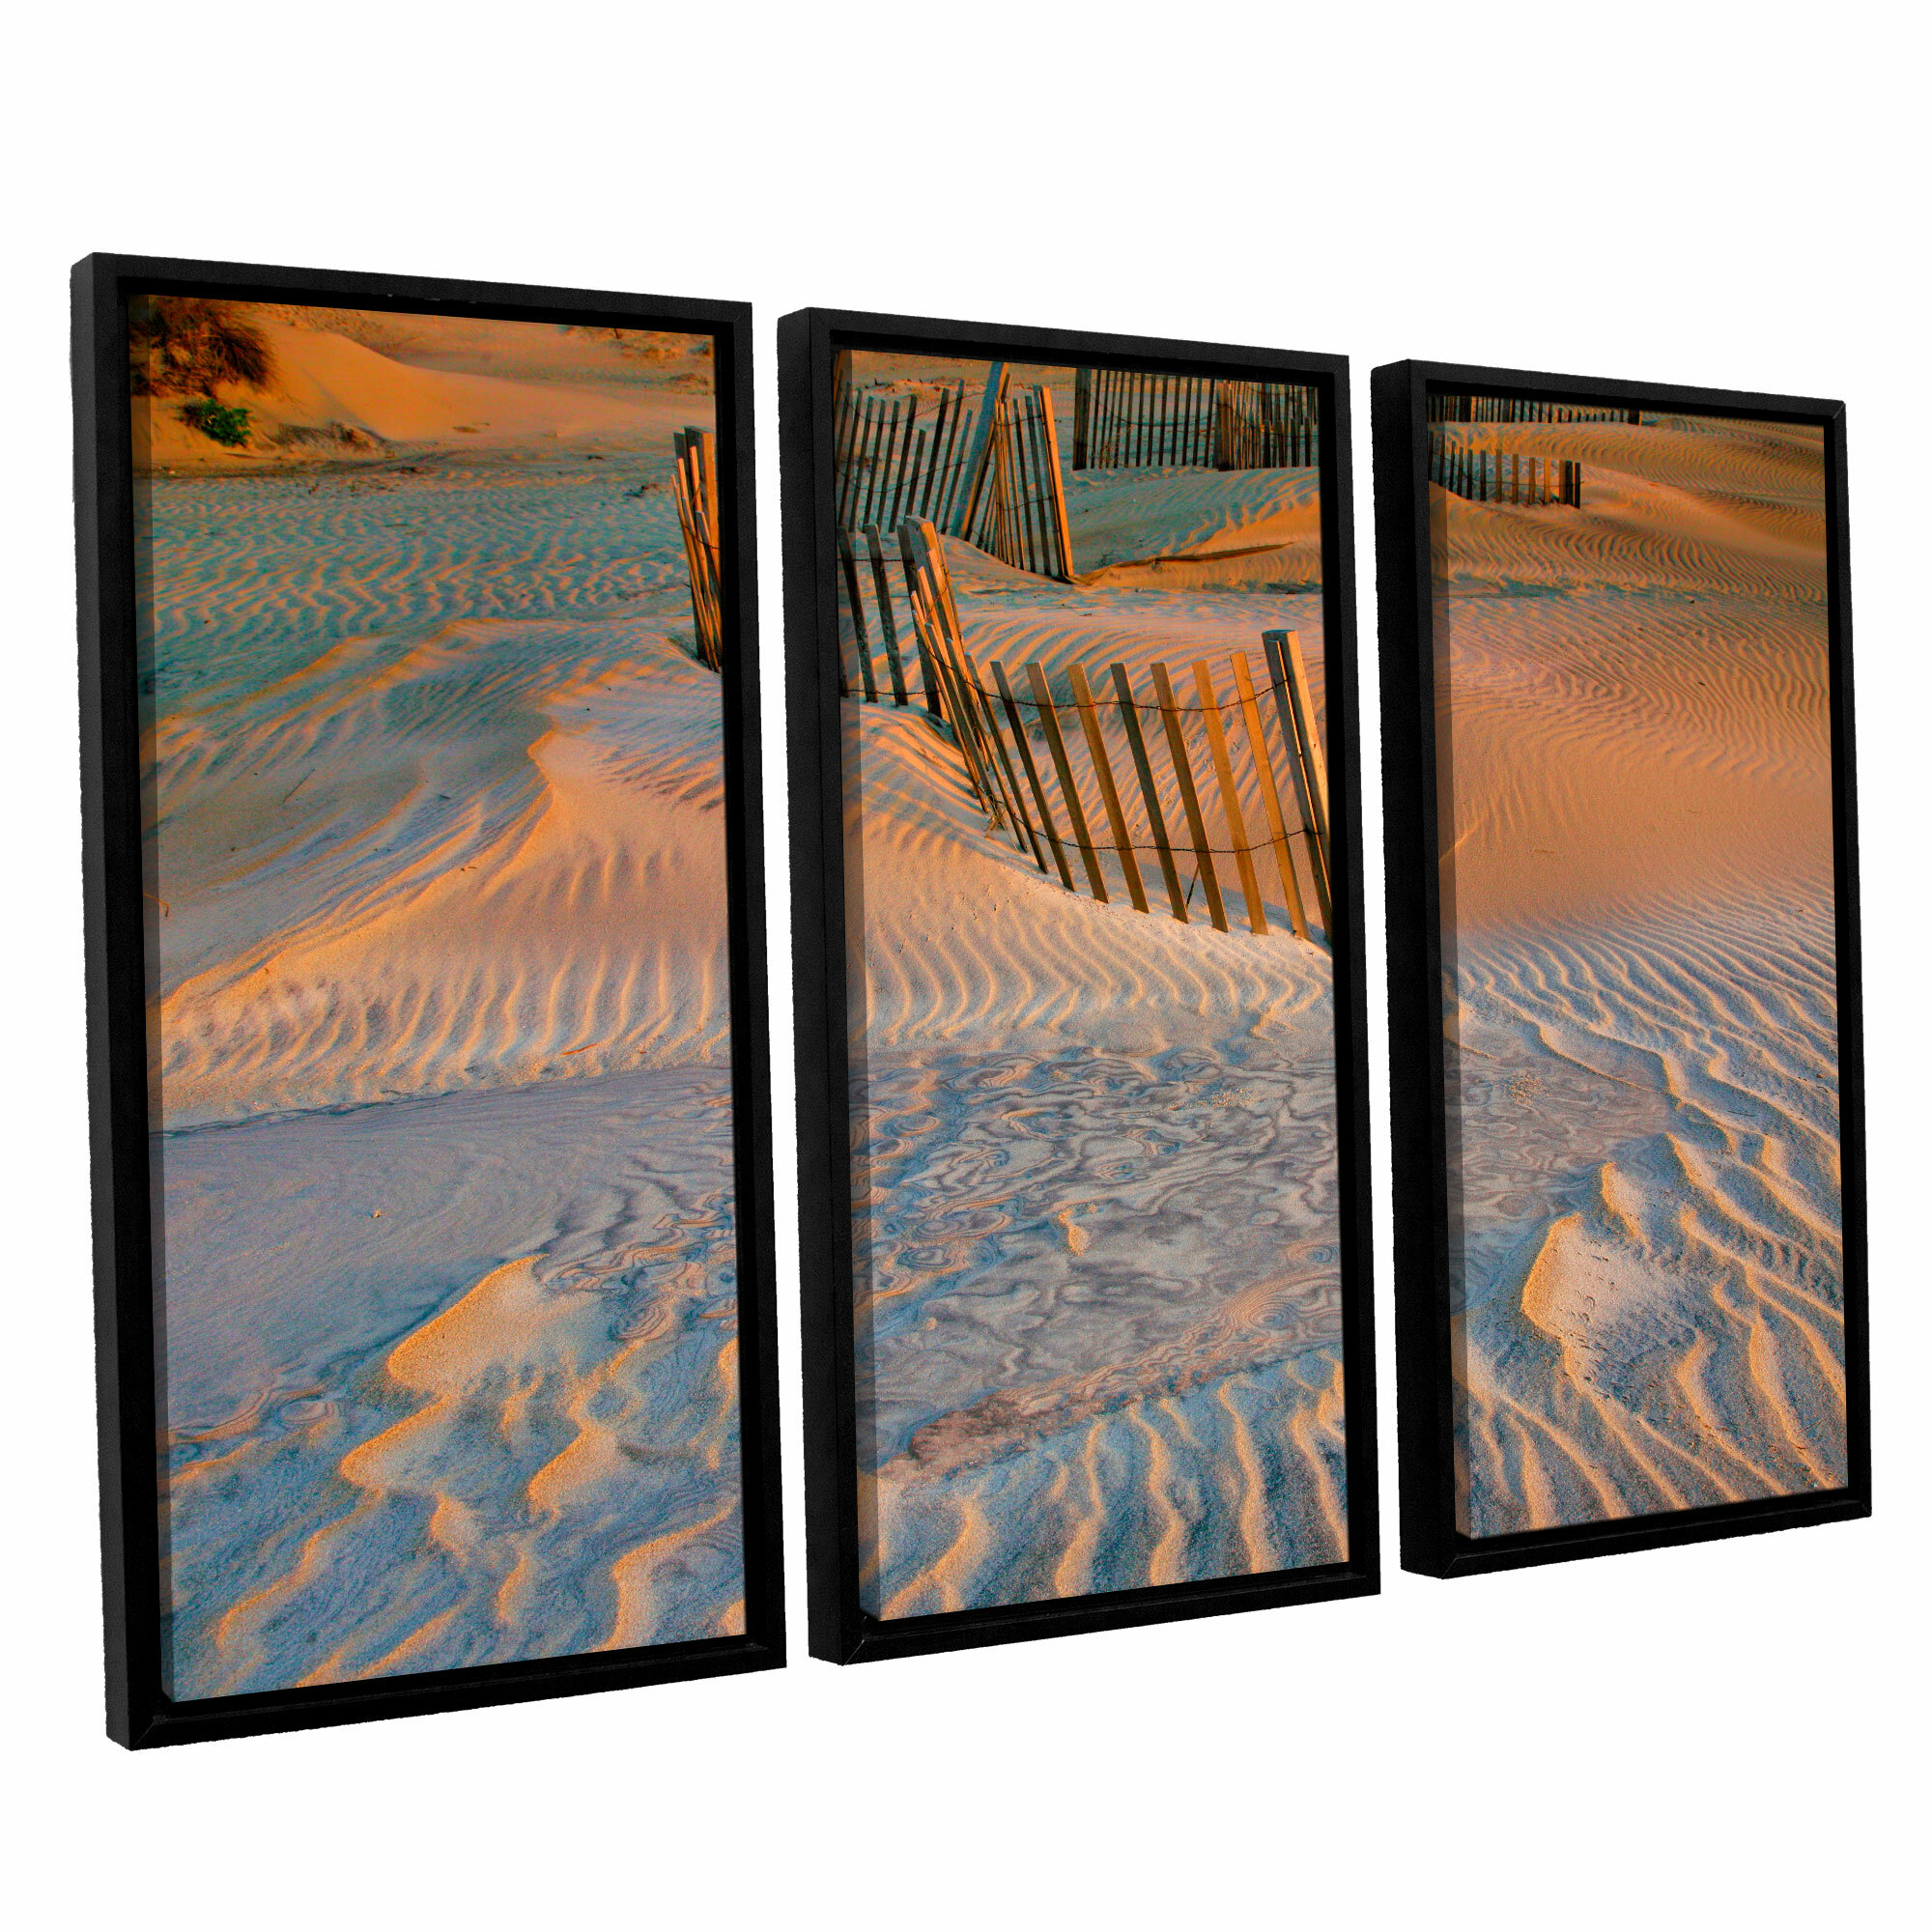 Artwall Dune Patterns Ii By Steve Ainsworth 3 Piece Framed Photographic Print On Wrapped Canvas Set Wayfair